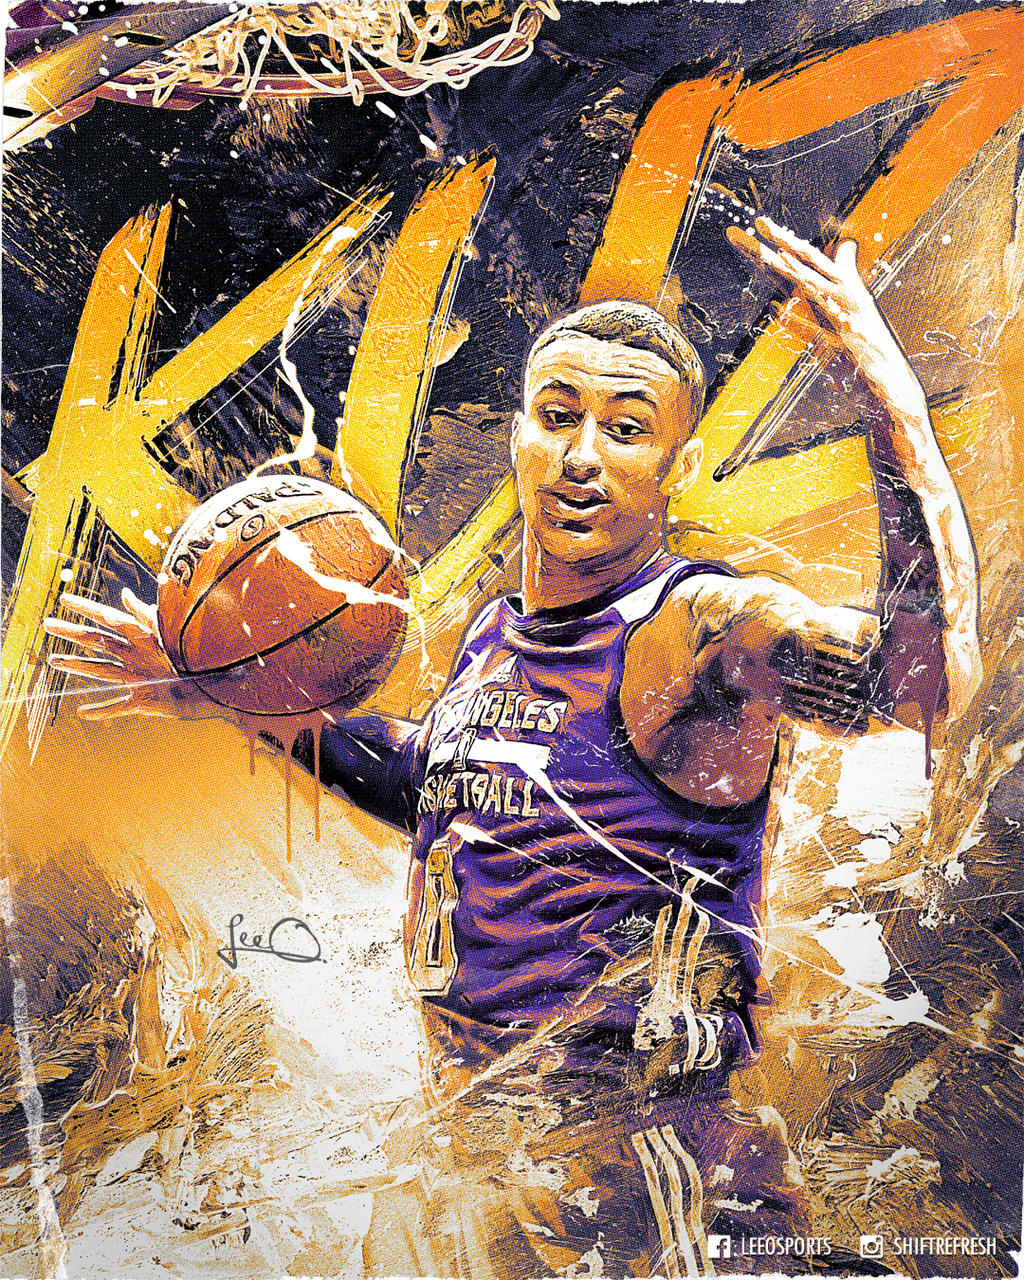 Lakers 2019 20 Schedule Wallpaper: Kyle Kuzma Lakers NBA Poster Design By Skythlee On DeviantArt